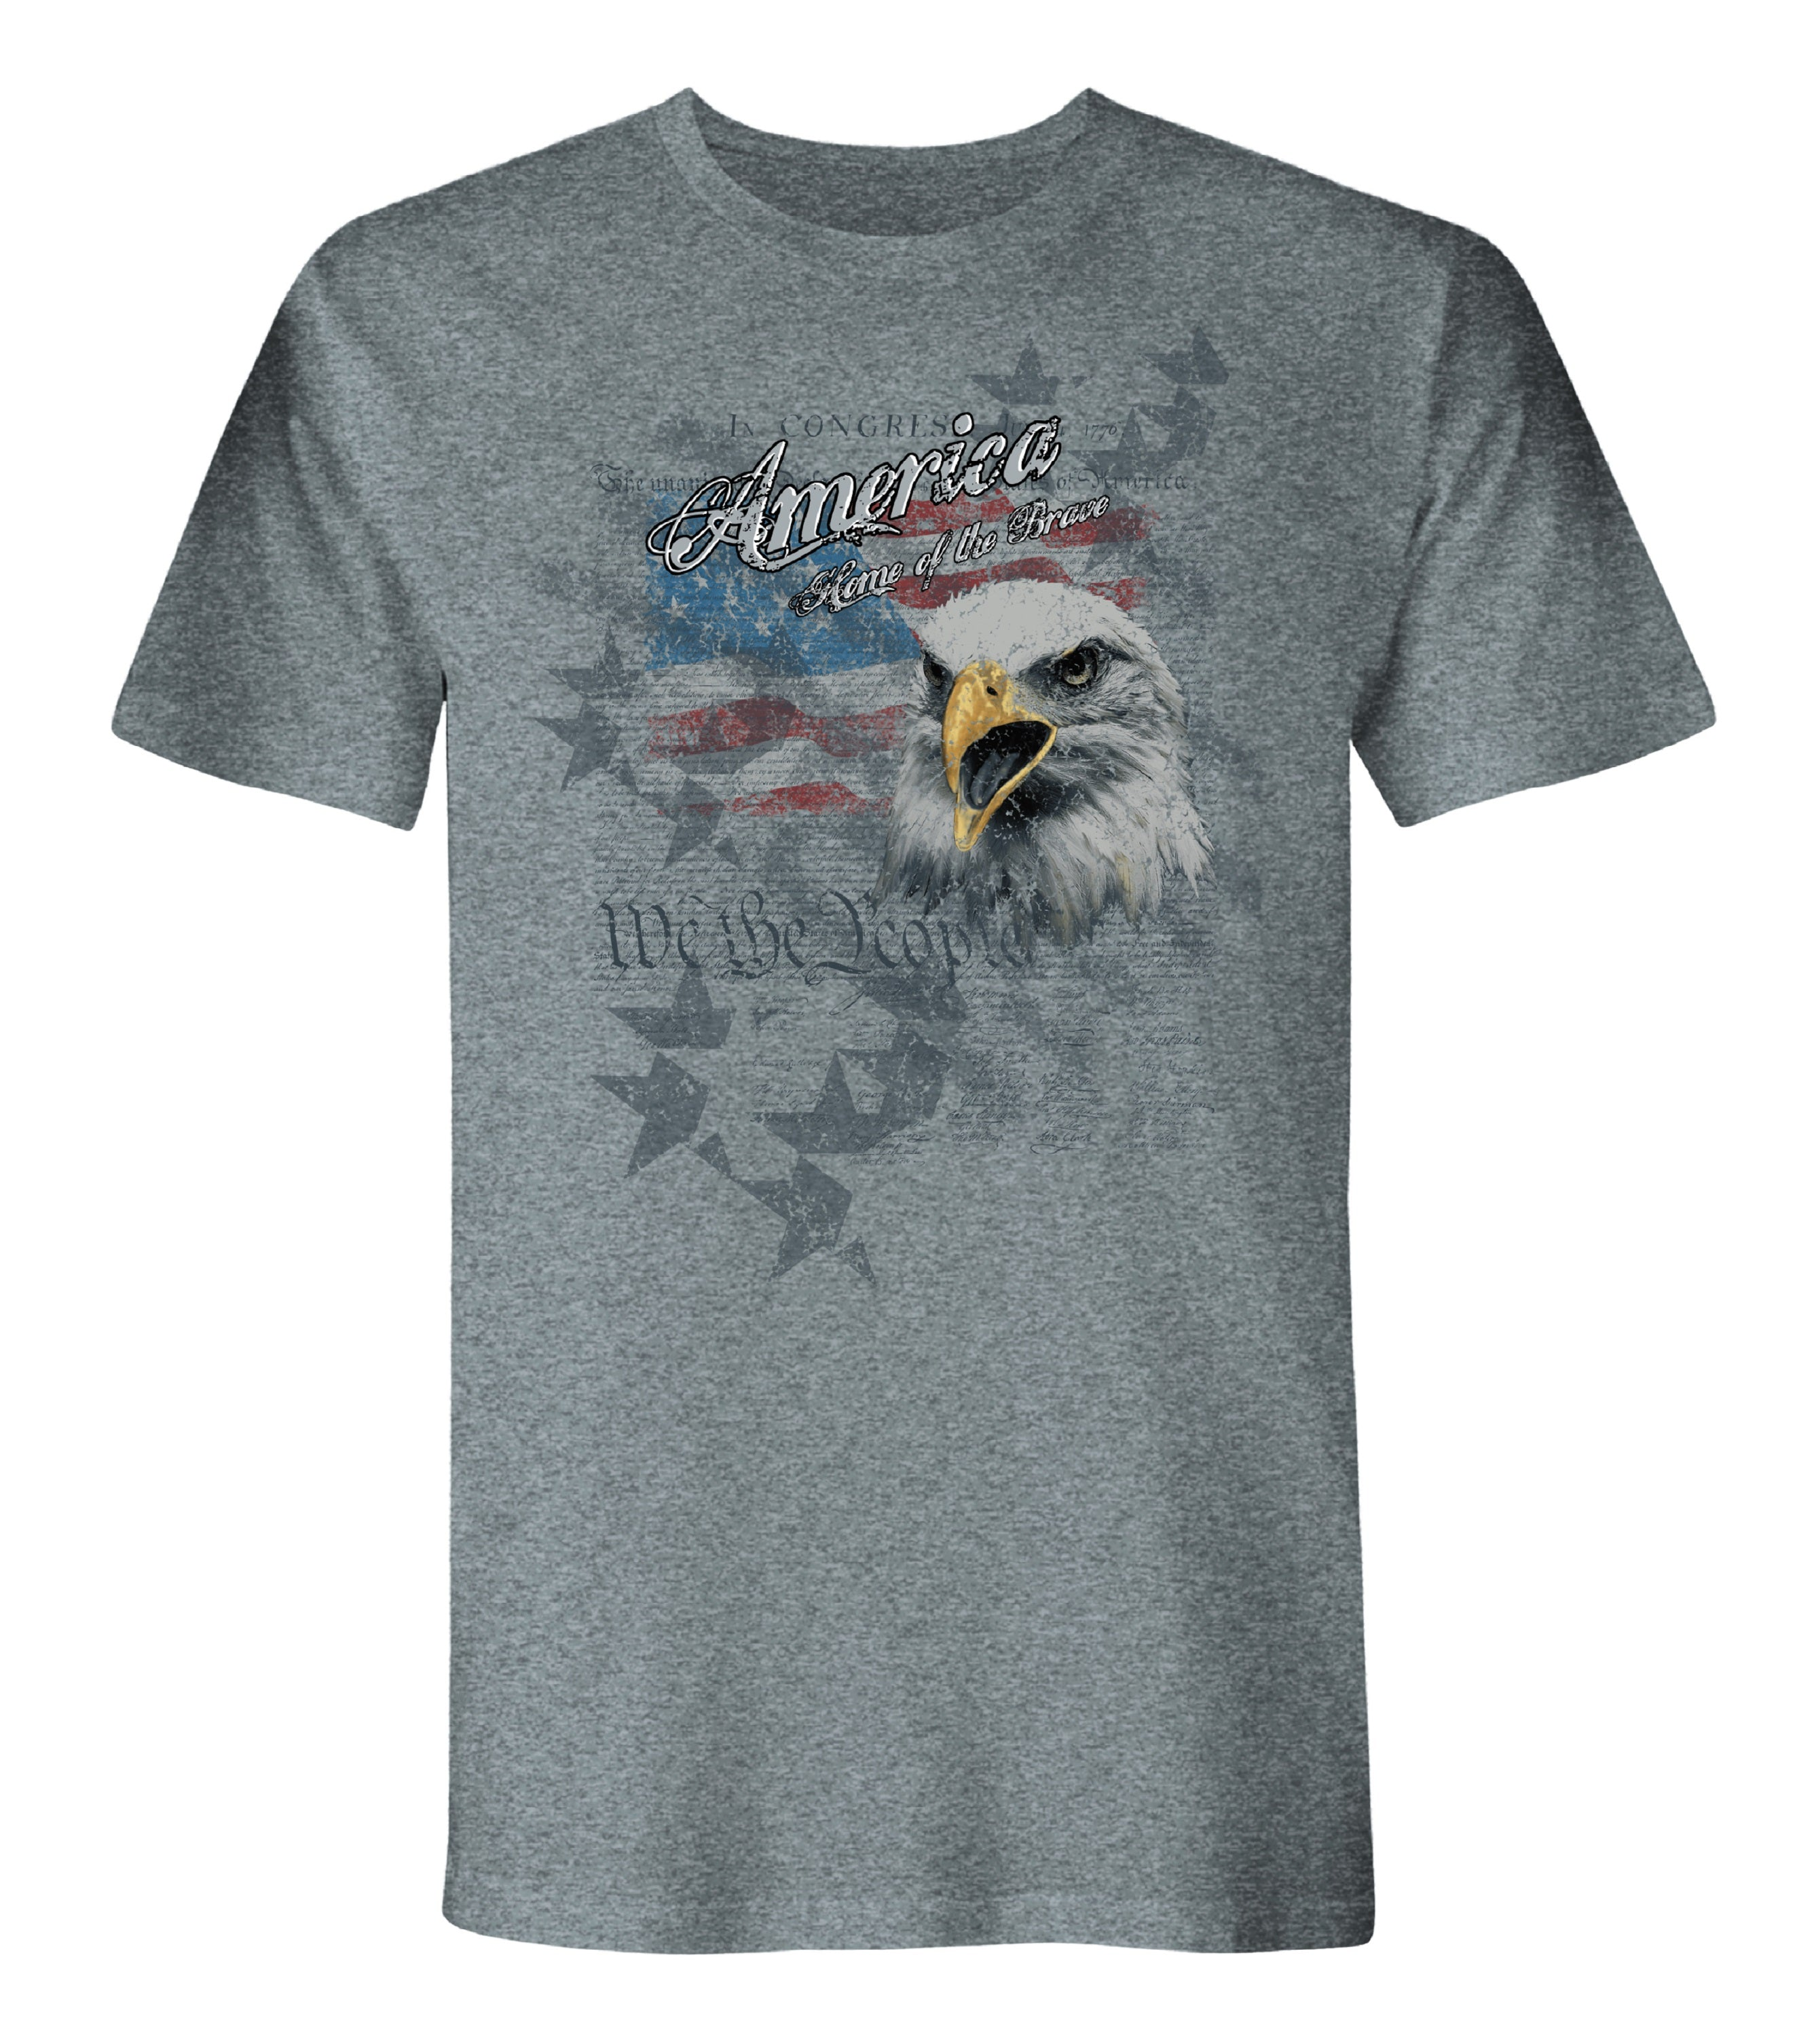 Collaged Home Of The Brave American Made Short Sleeve Tee - theflagshirt